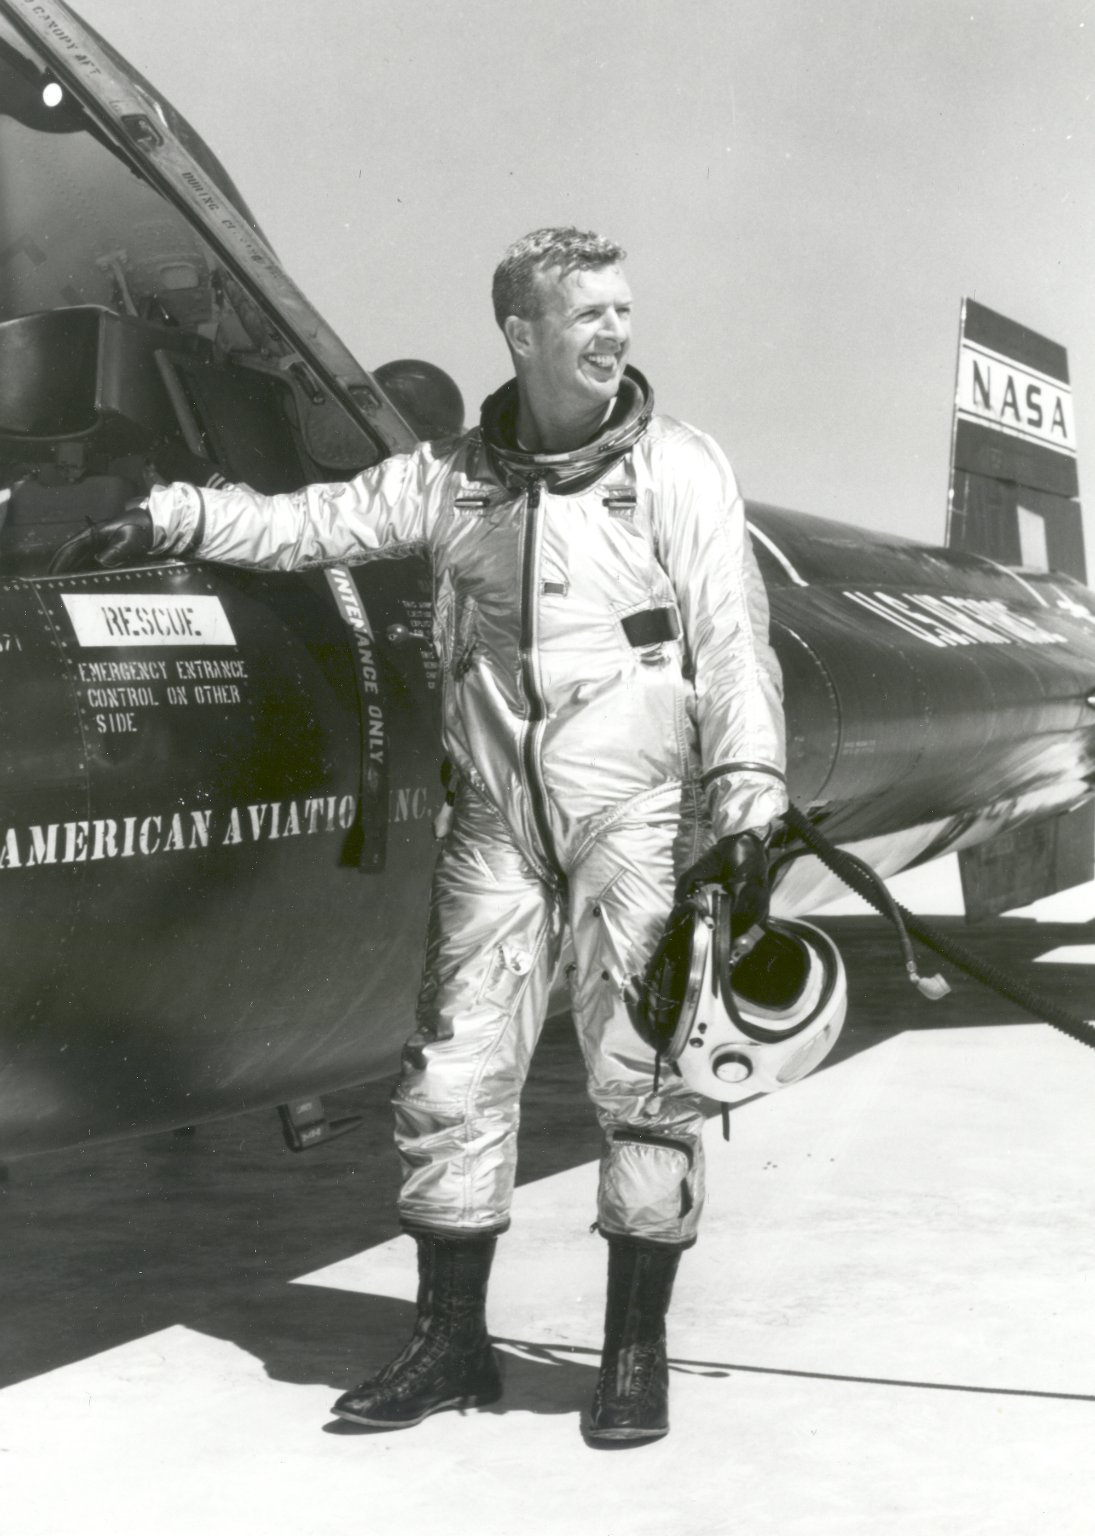 Joe Walker beside an X-15 following a 169,000-foot altitude flight<br />NASA photo, 30 March 1961 GPN-2002-000012.jpg